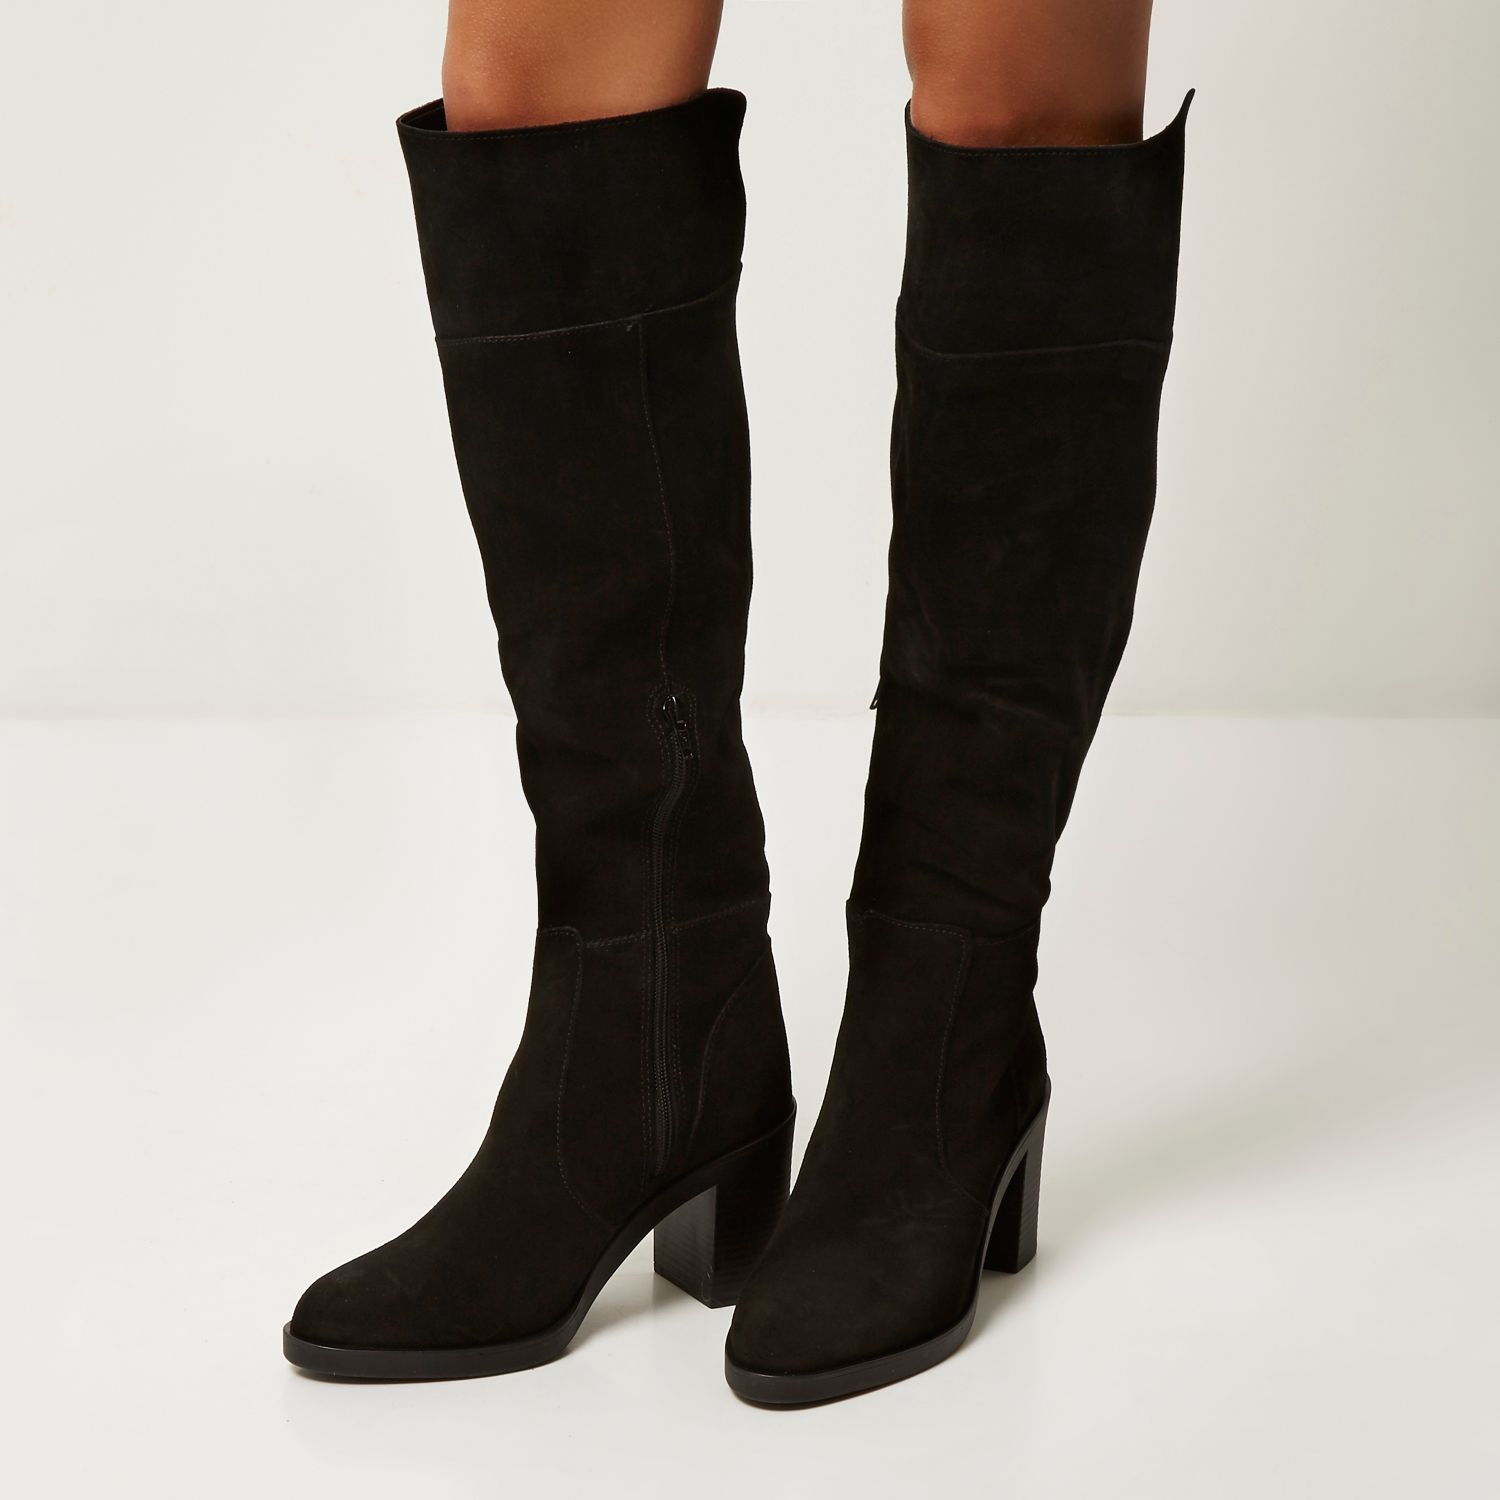 Shop black suede knee boot at Neiman Marcus, where you will find free shipping on the latest in fashion from top designers.